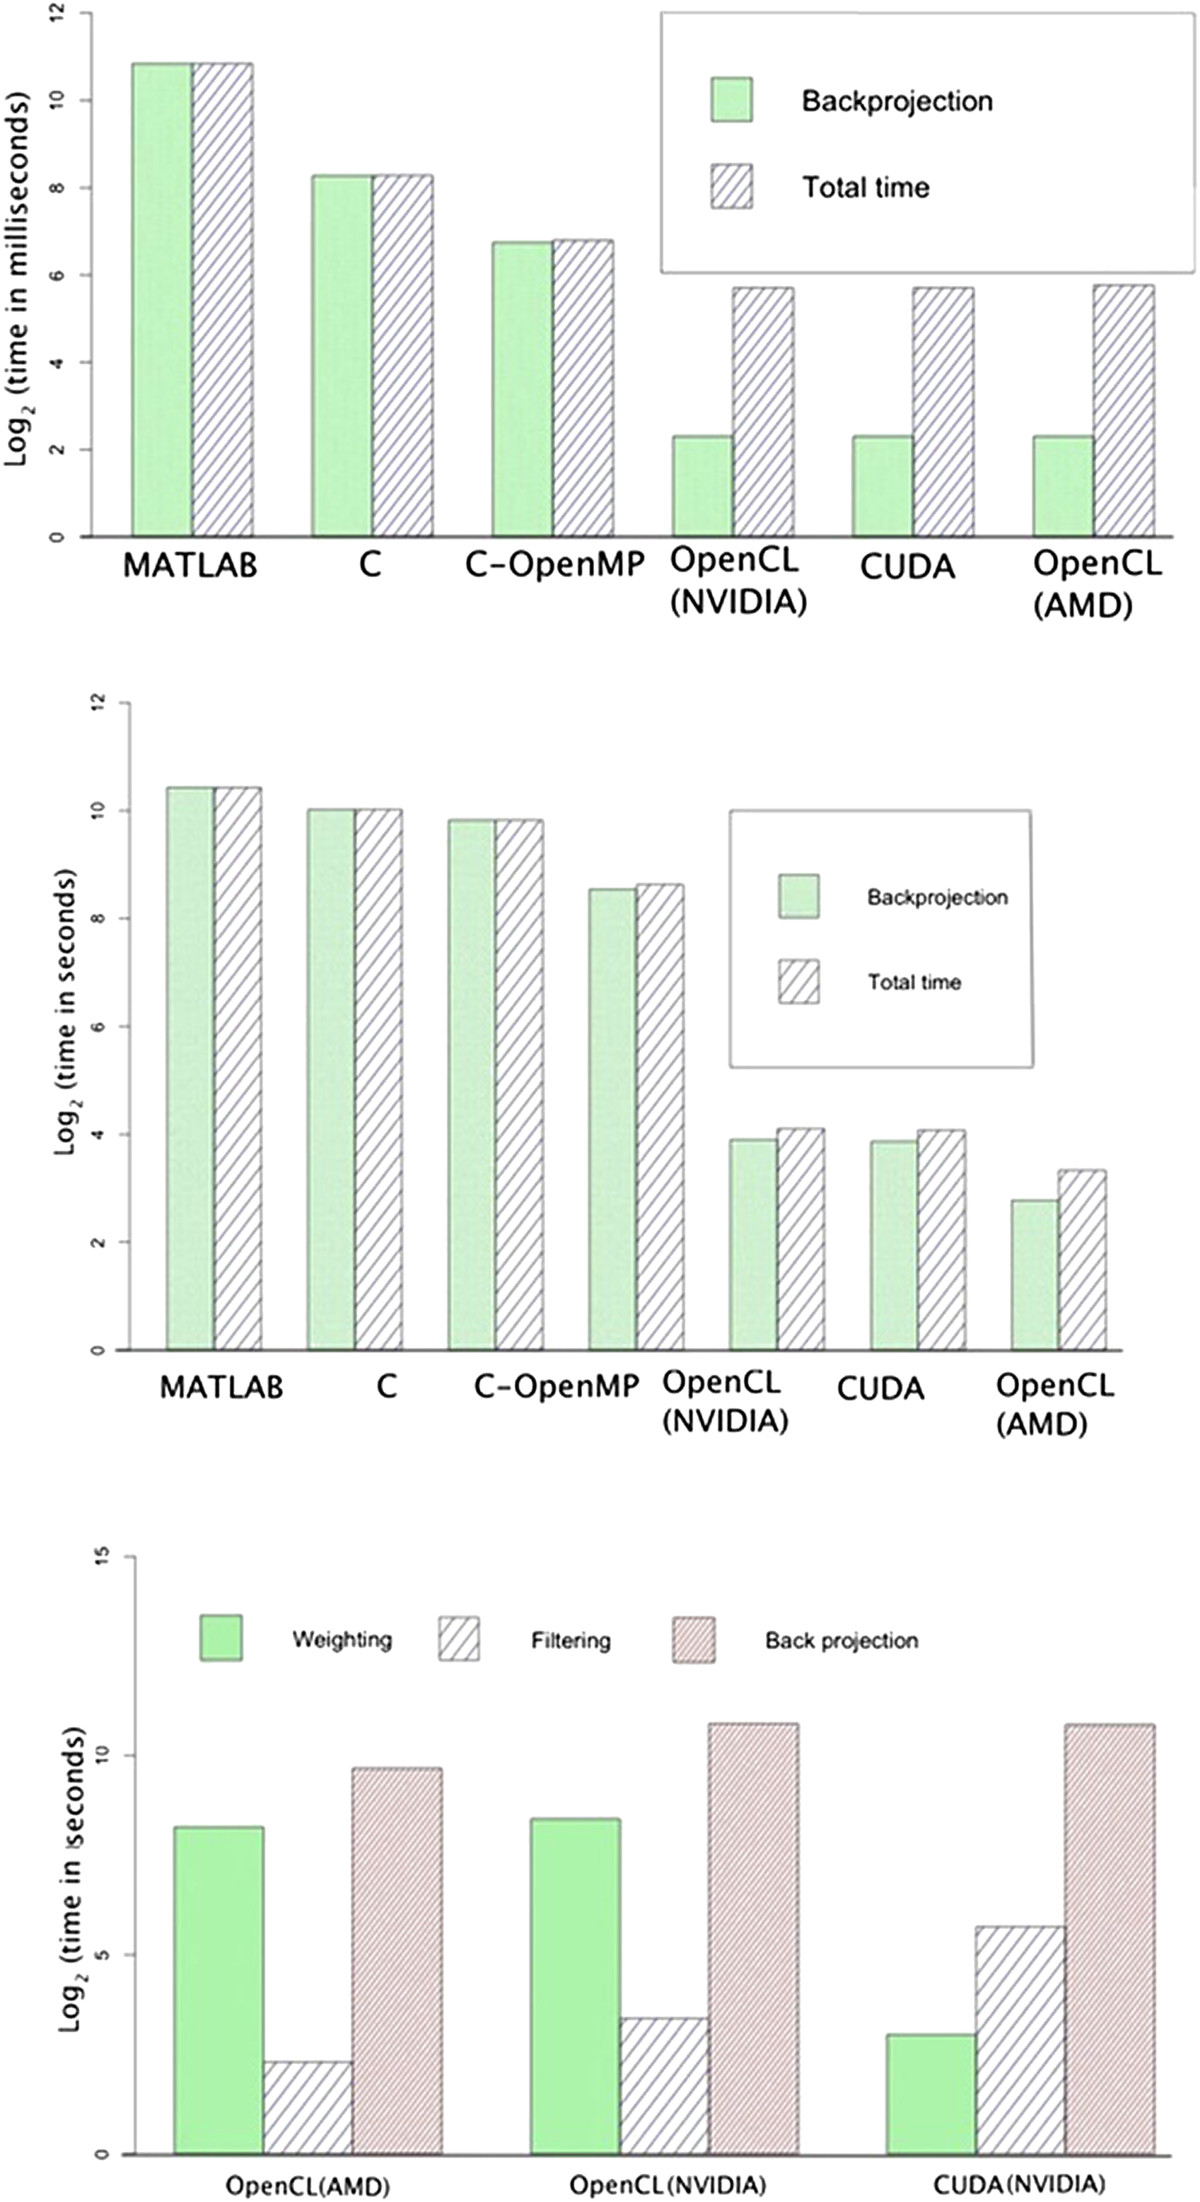 https://static-content.springer.com/image/art%3A10.1186%2F1756-0500-7-582/MediaObjects/13104_2014_Article_3133_Fig5_HTML.jpg